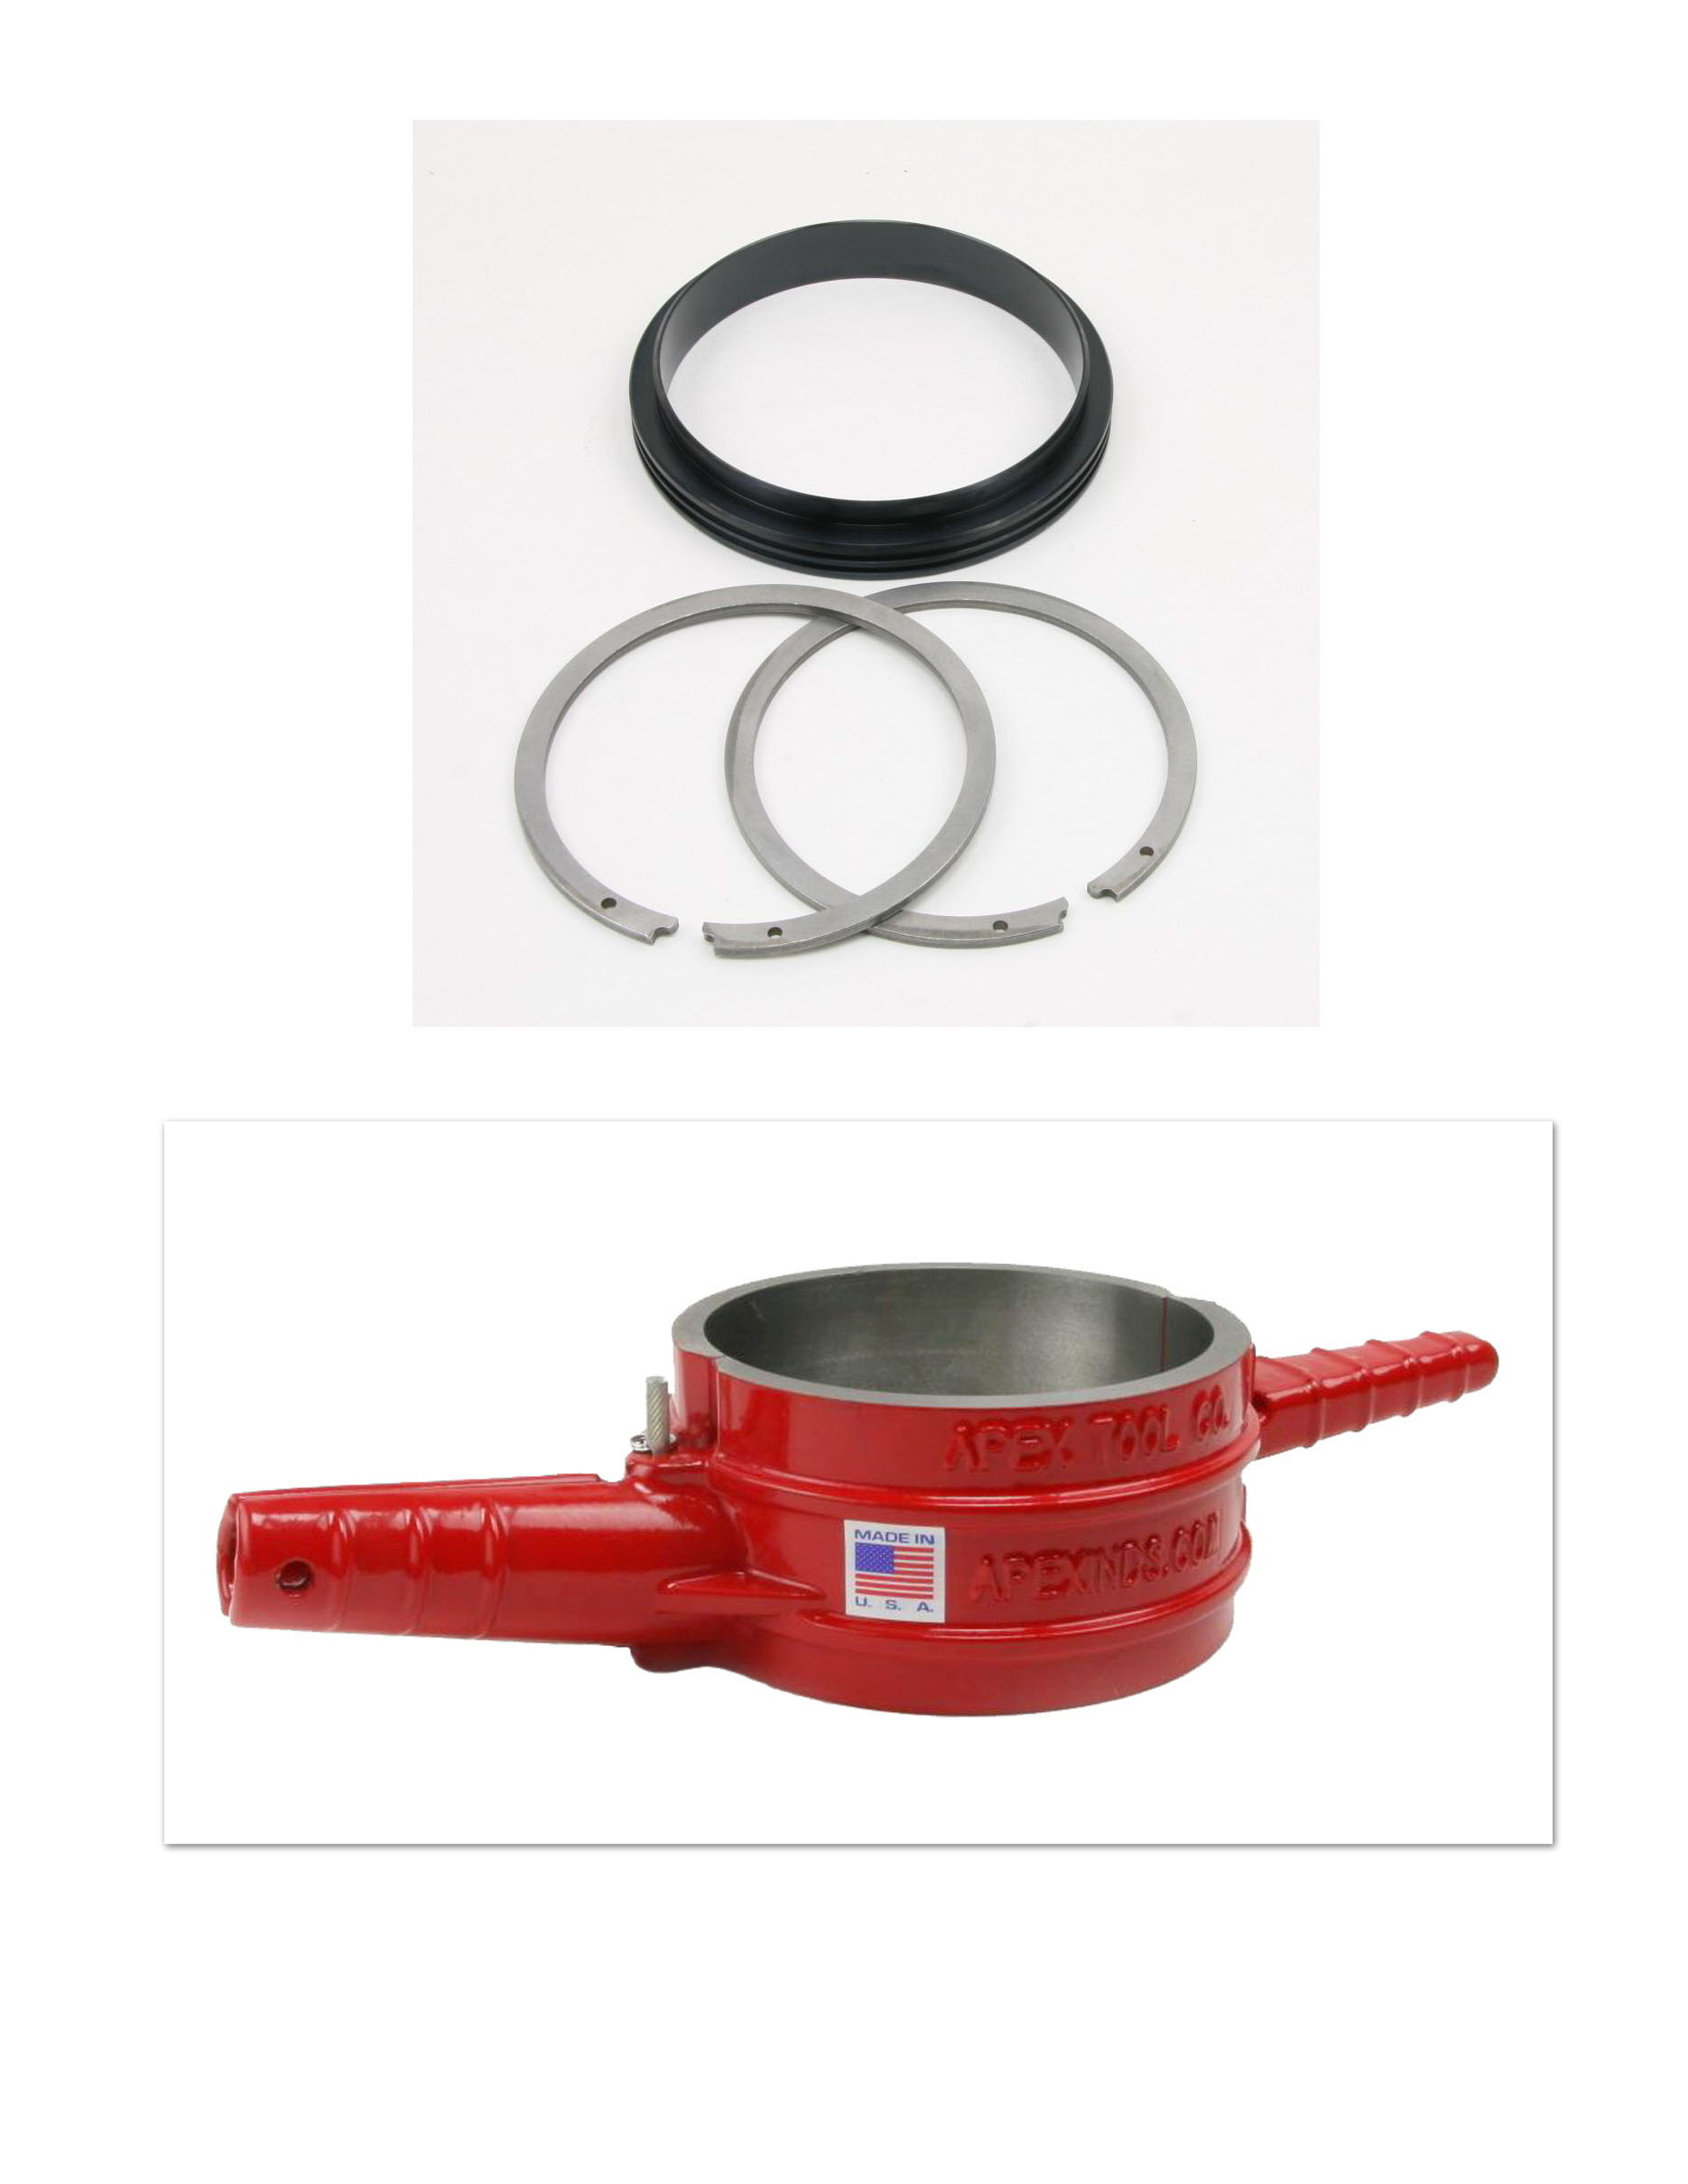 Cummins ISX Anti Polishing Ring and Piston Ring Compressor Kit – ATC5299448